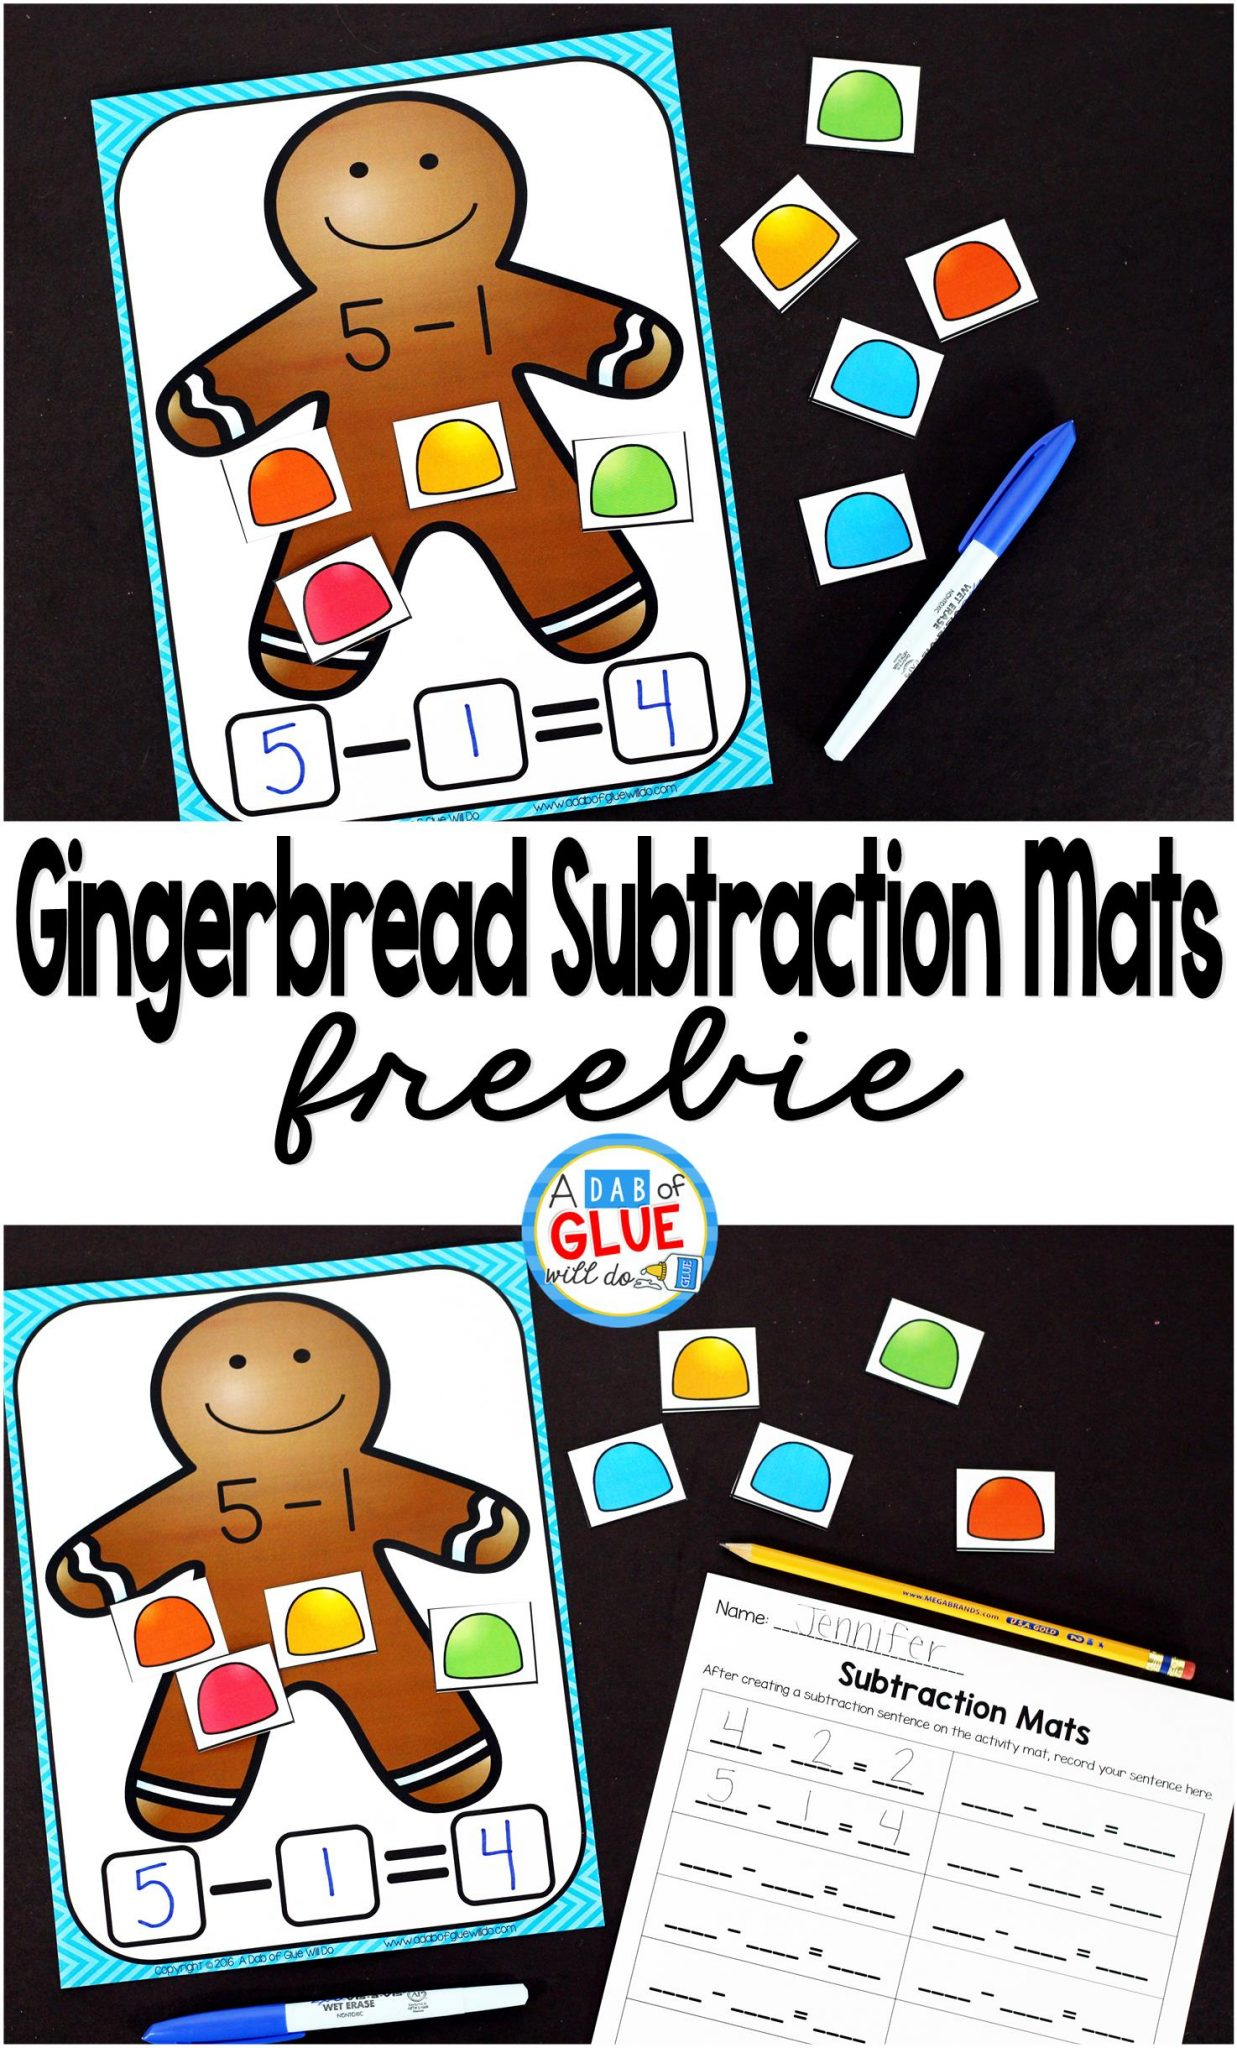 Gingerbread Subtraction Mats - A Dab of Glue Will Do